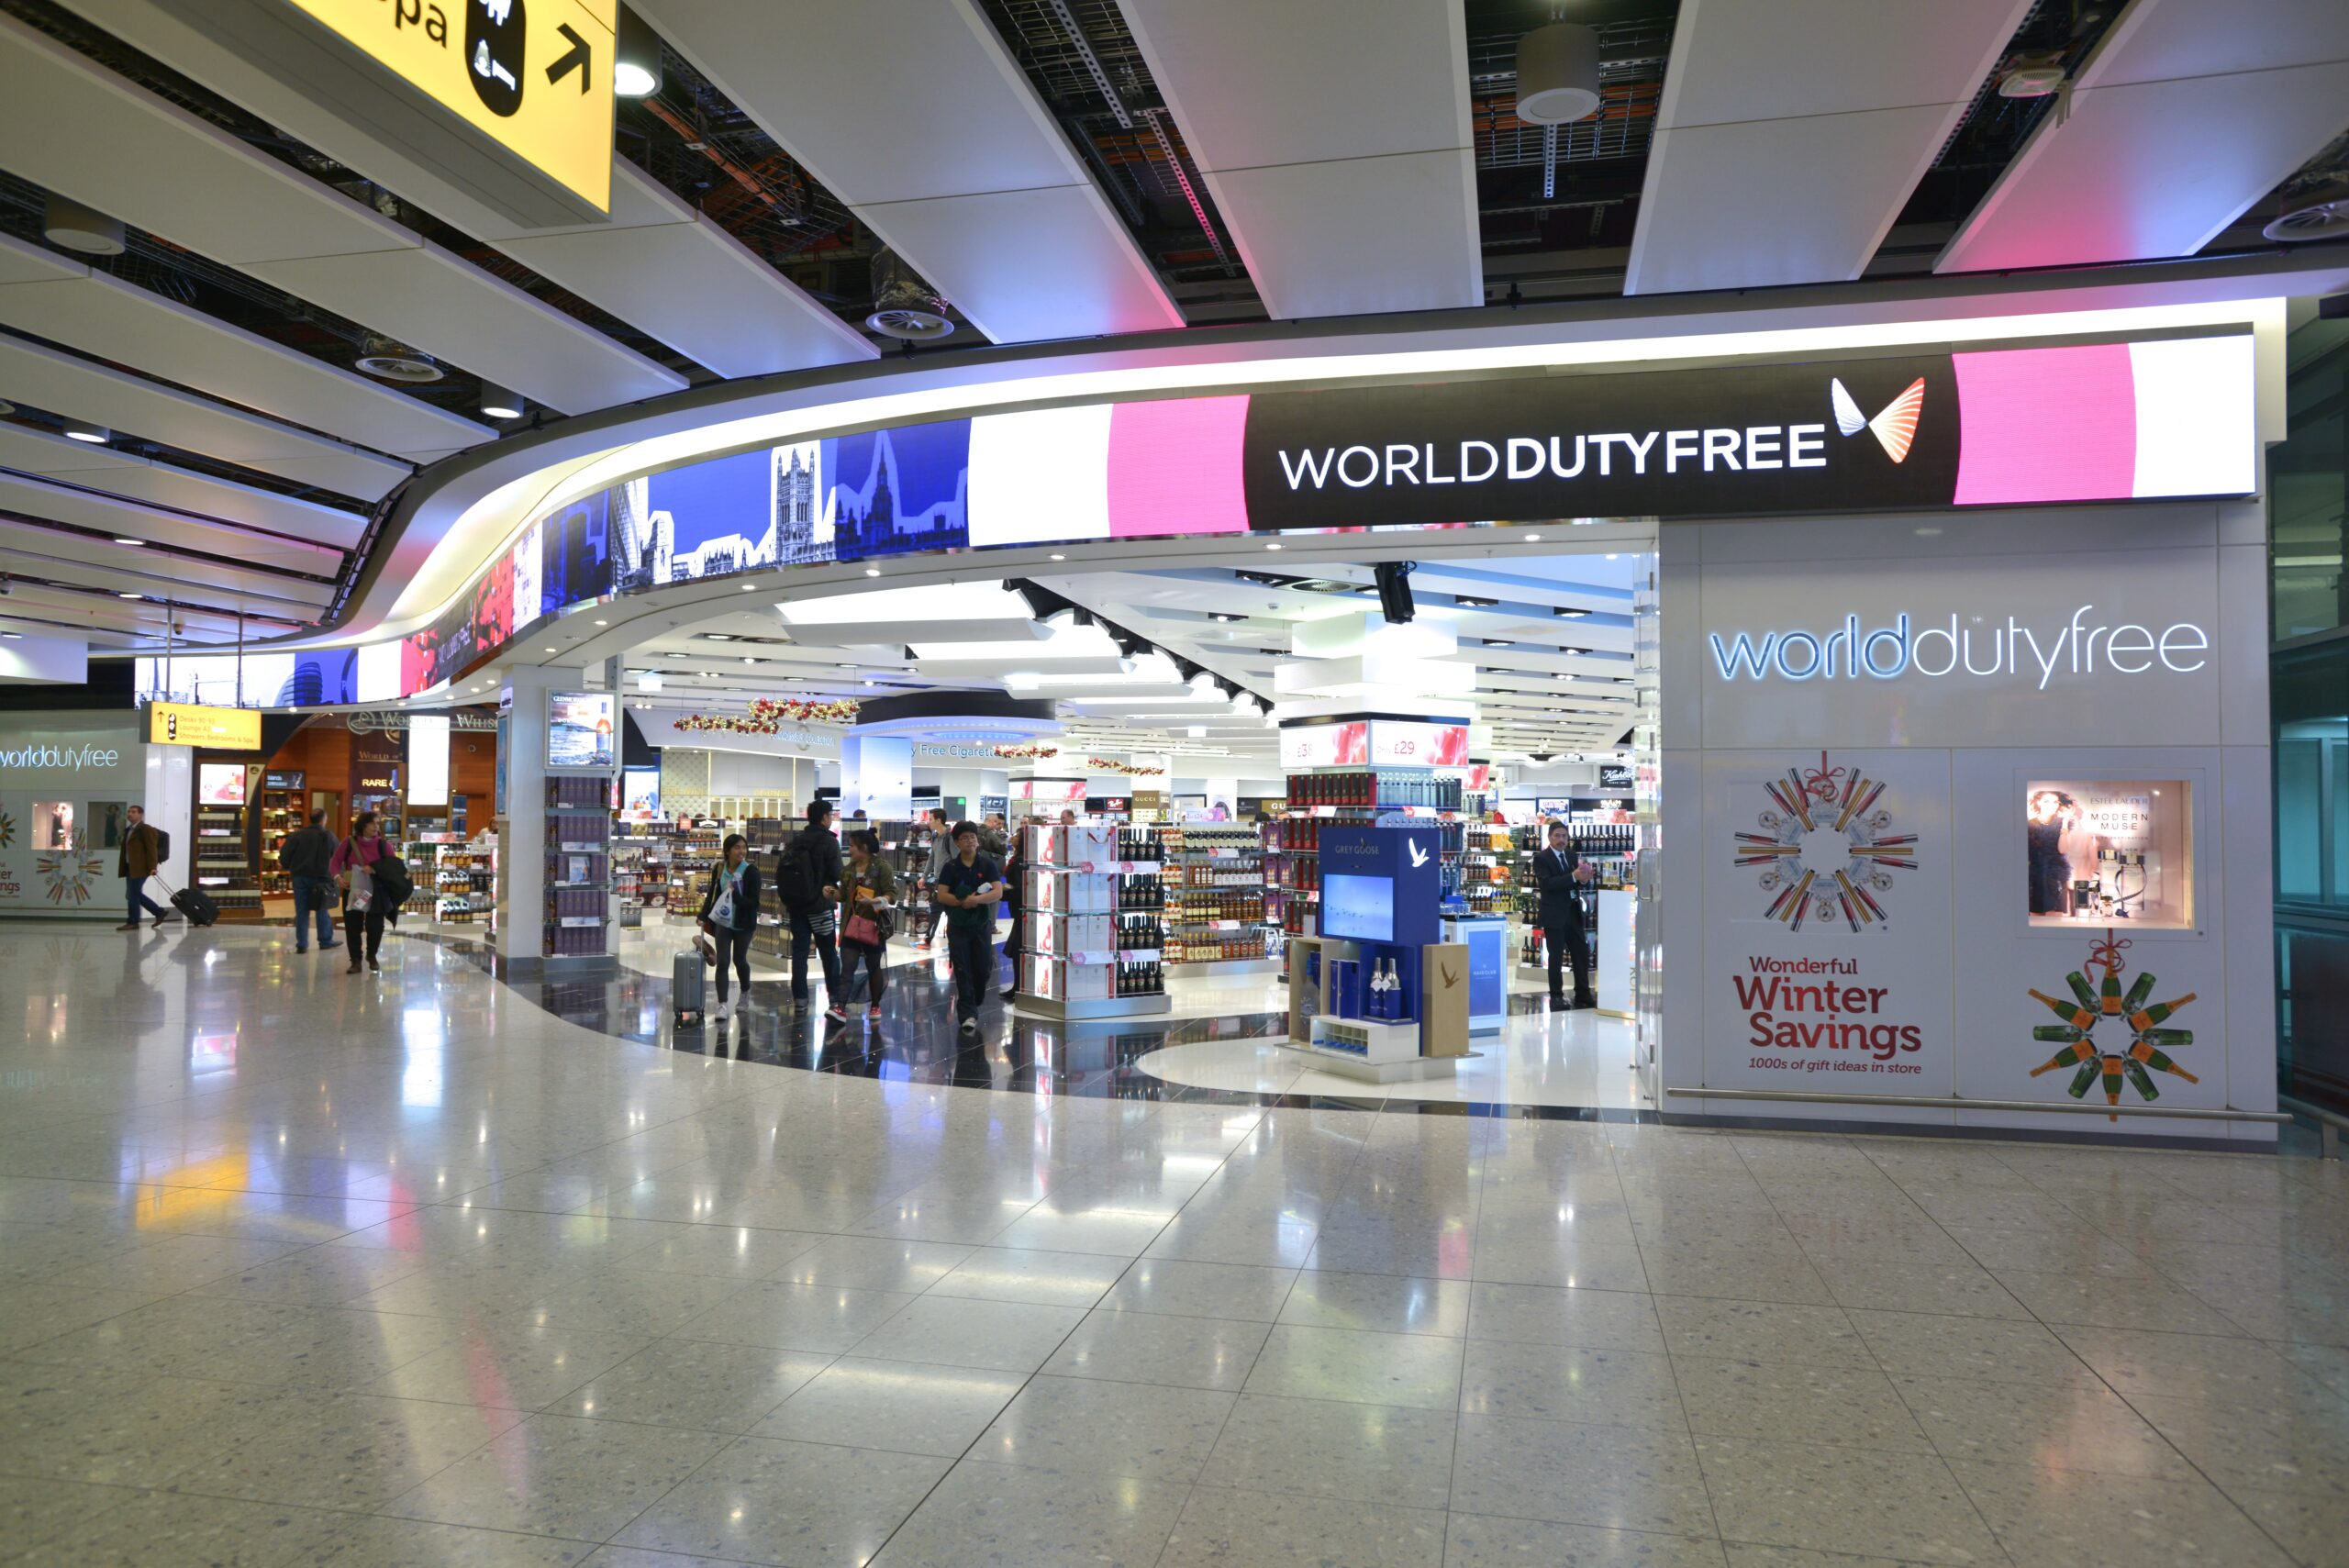 Blynk designed, supplied, and installed all the digital and audio elements in Dufry Group's flagship store in Heathrow Terminal 2. We implemented a unique flexible high-resolution digital fascia & high-resolution edgeless LED column. We also incorporated Meyer Sound audio throughout and included a digital concierge and interactive 'fragrance finder' display.